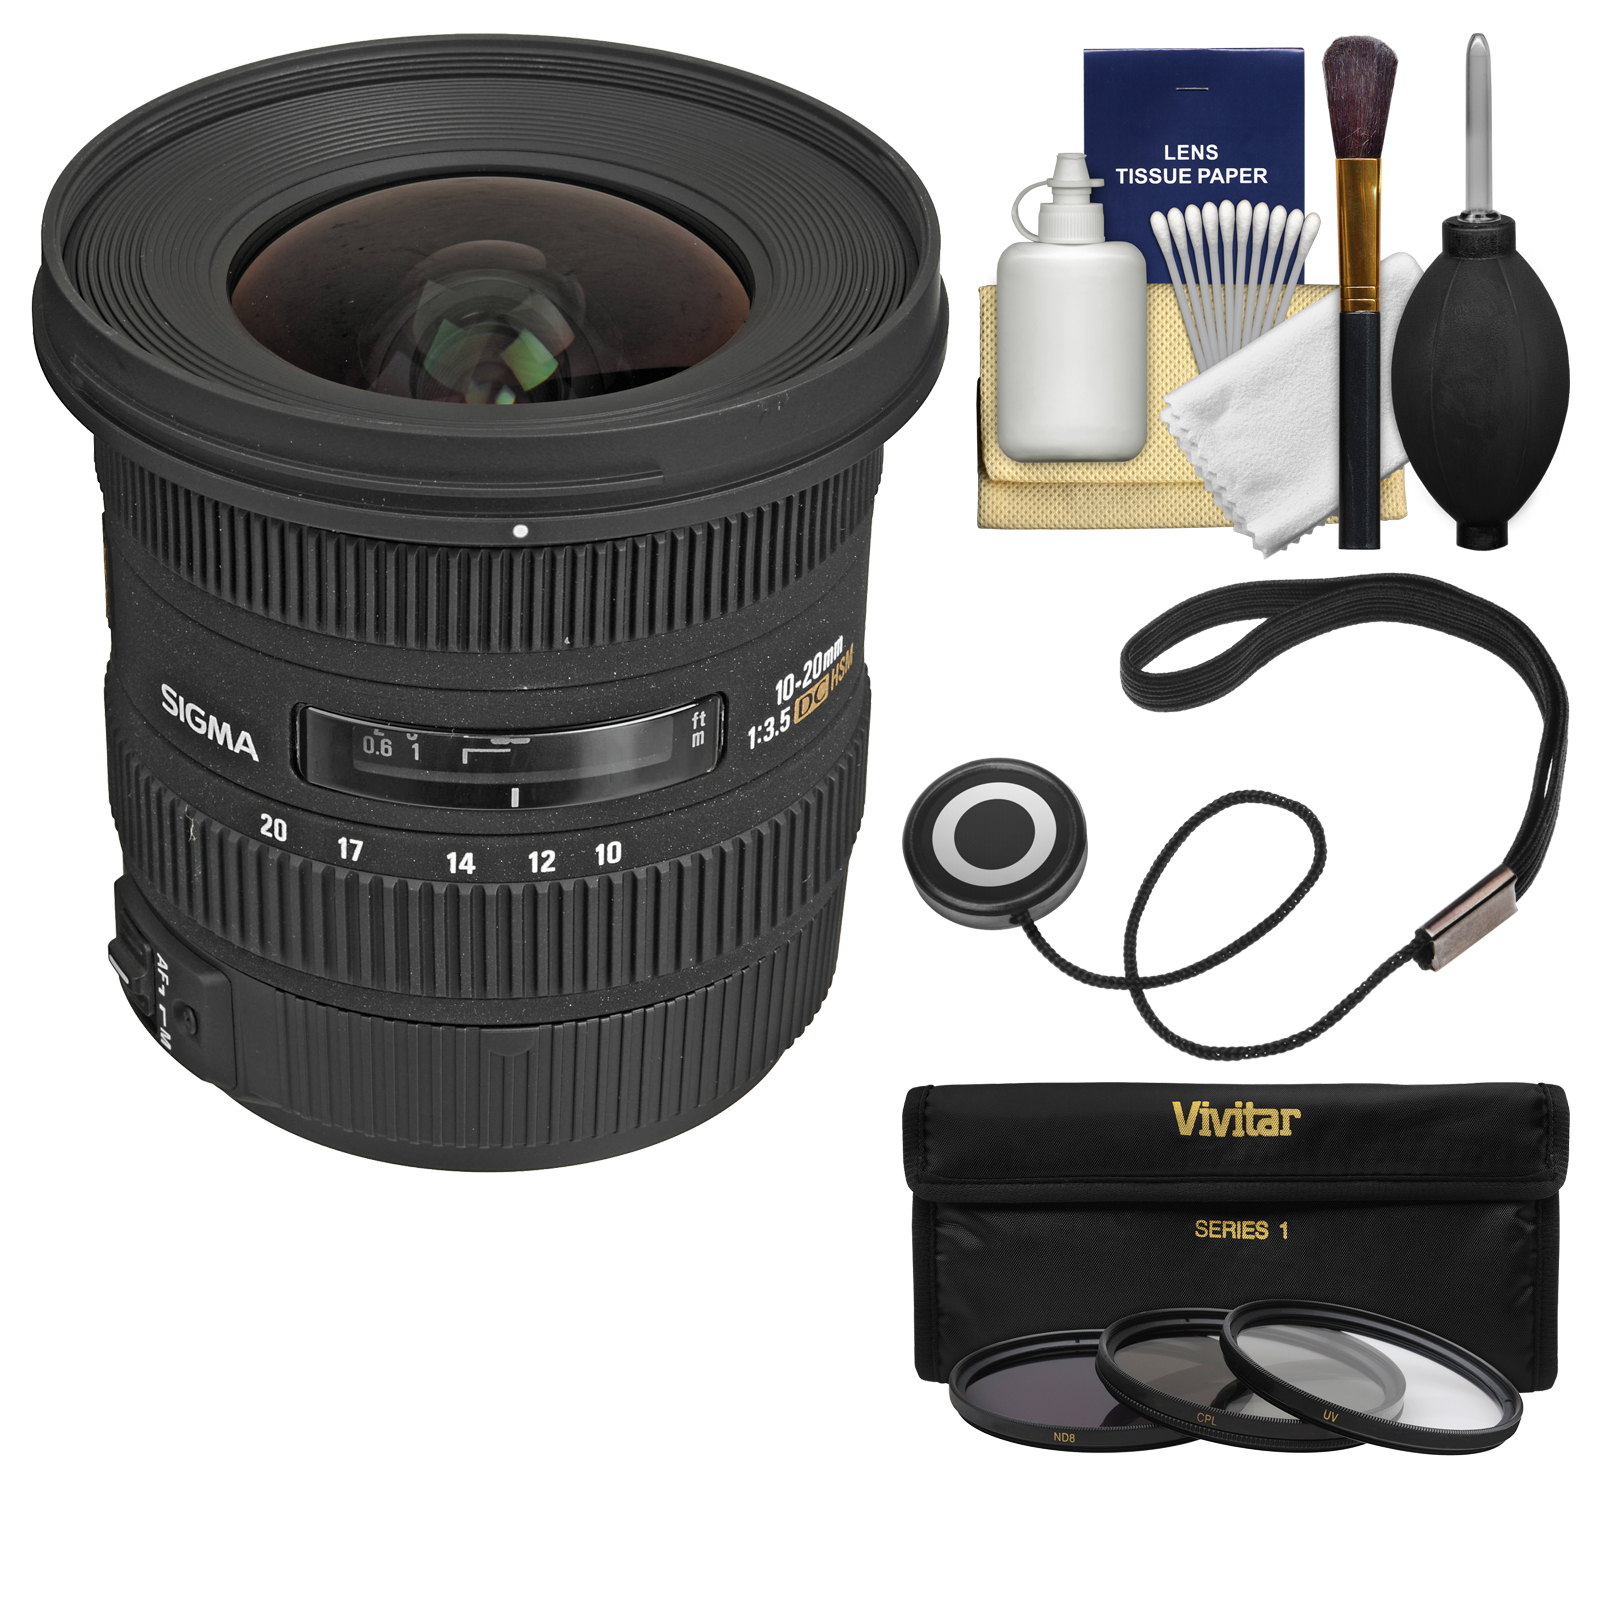 Sigma 10-20mm f/3.5 EX DC HSM Zoom Lens with 3 Filters Ki...